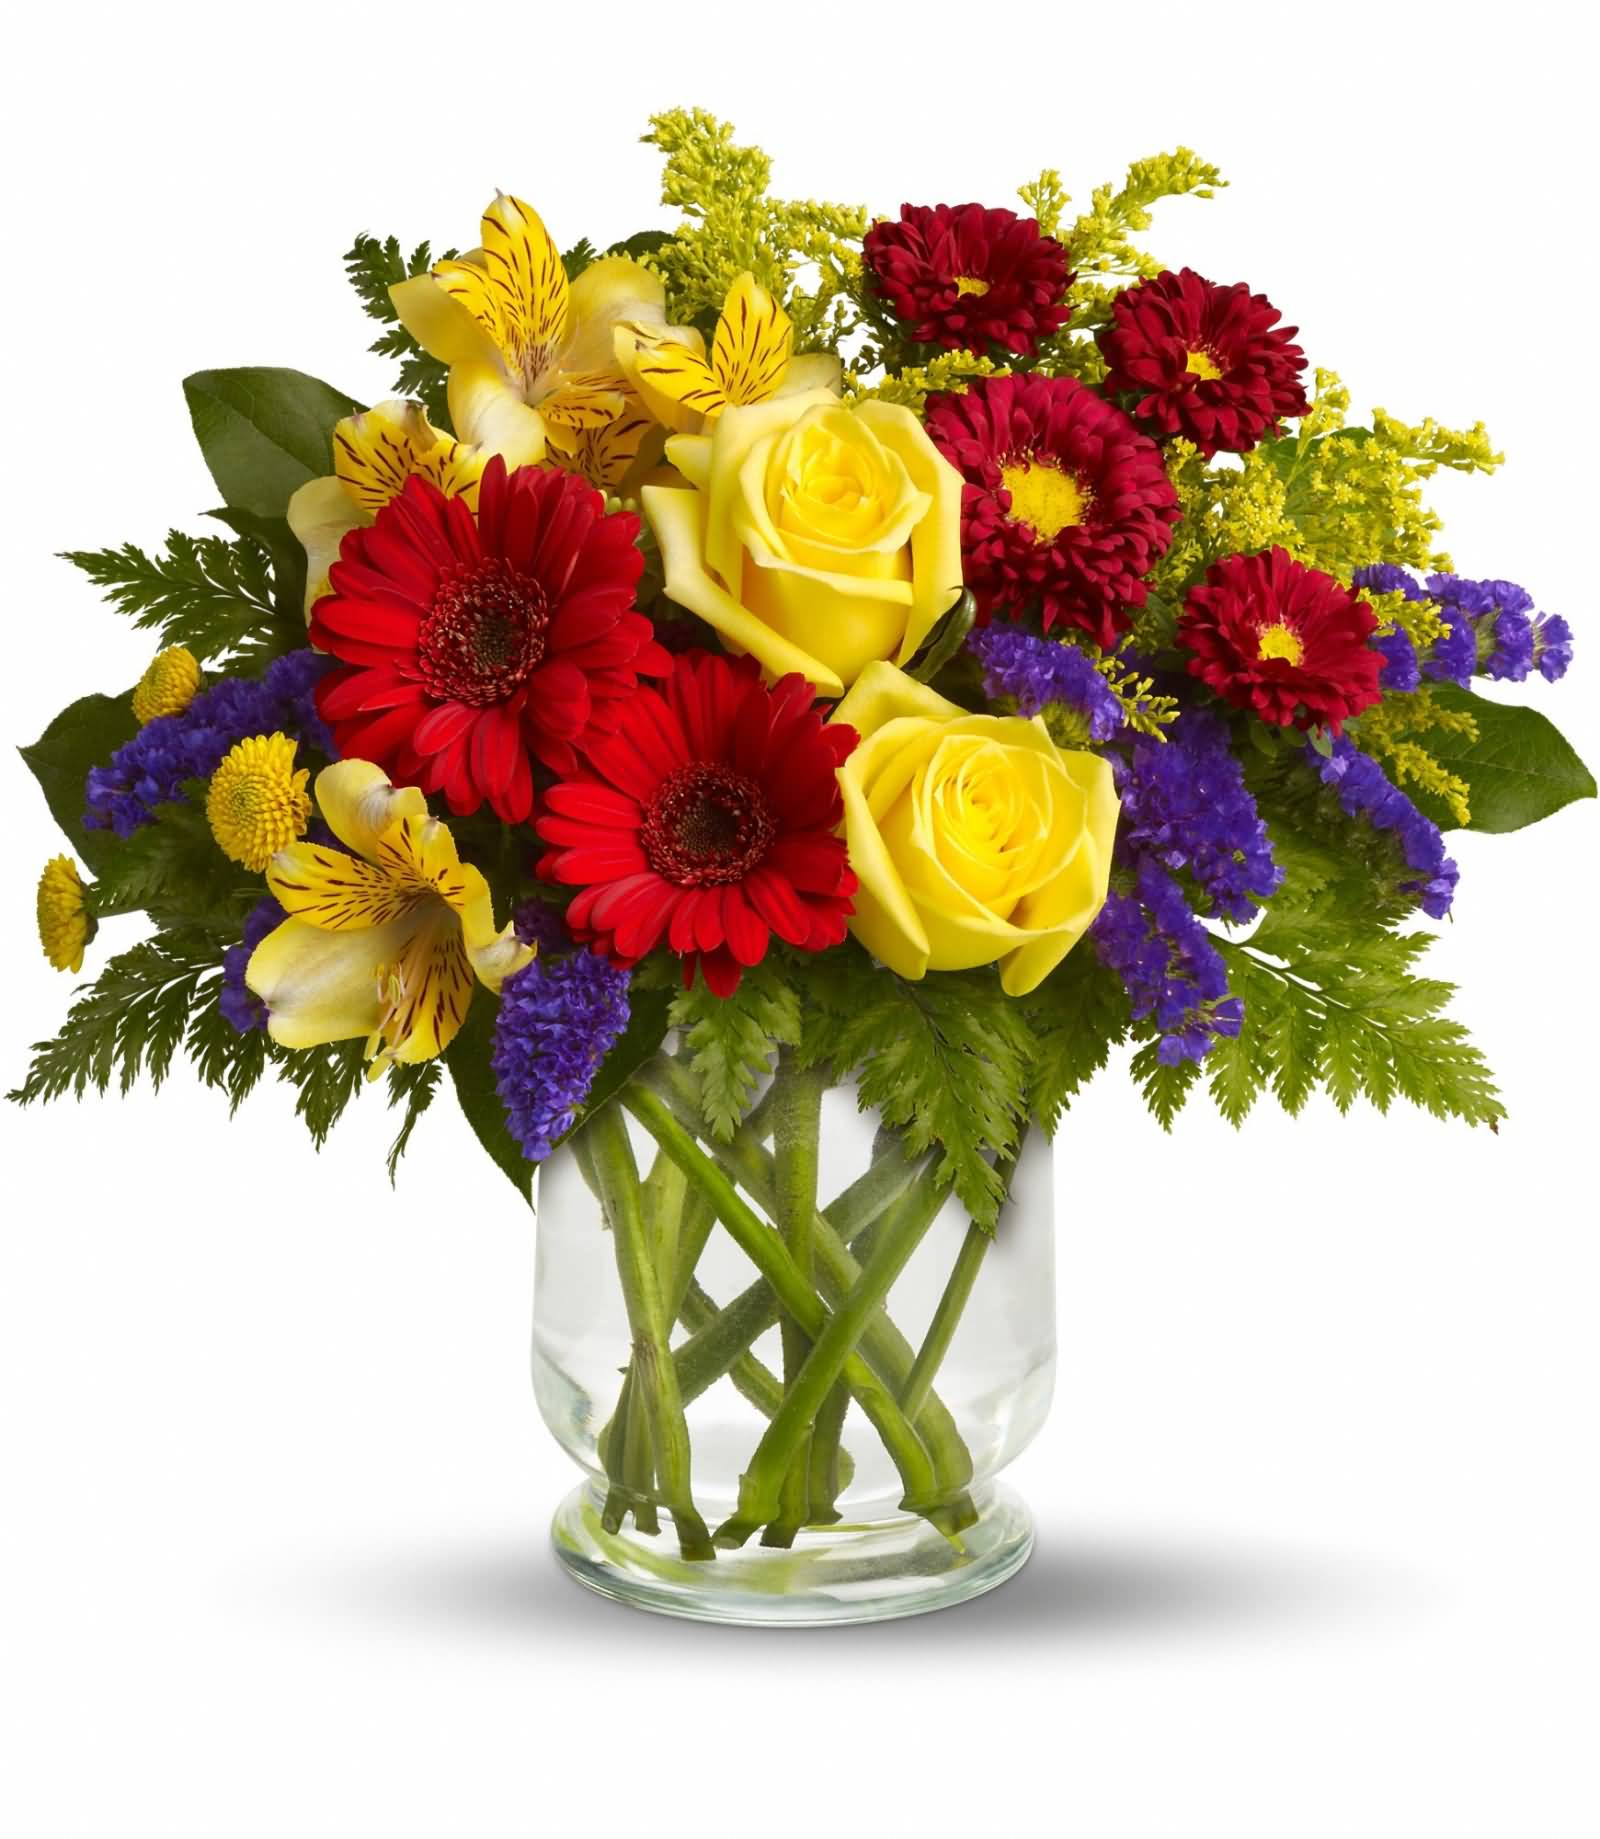 Beautiful Flower Bouquets Pictures | Euffslemani.com